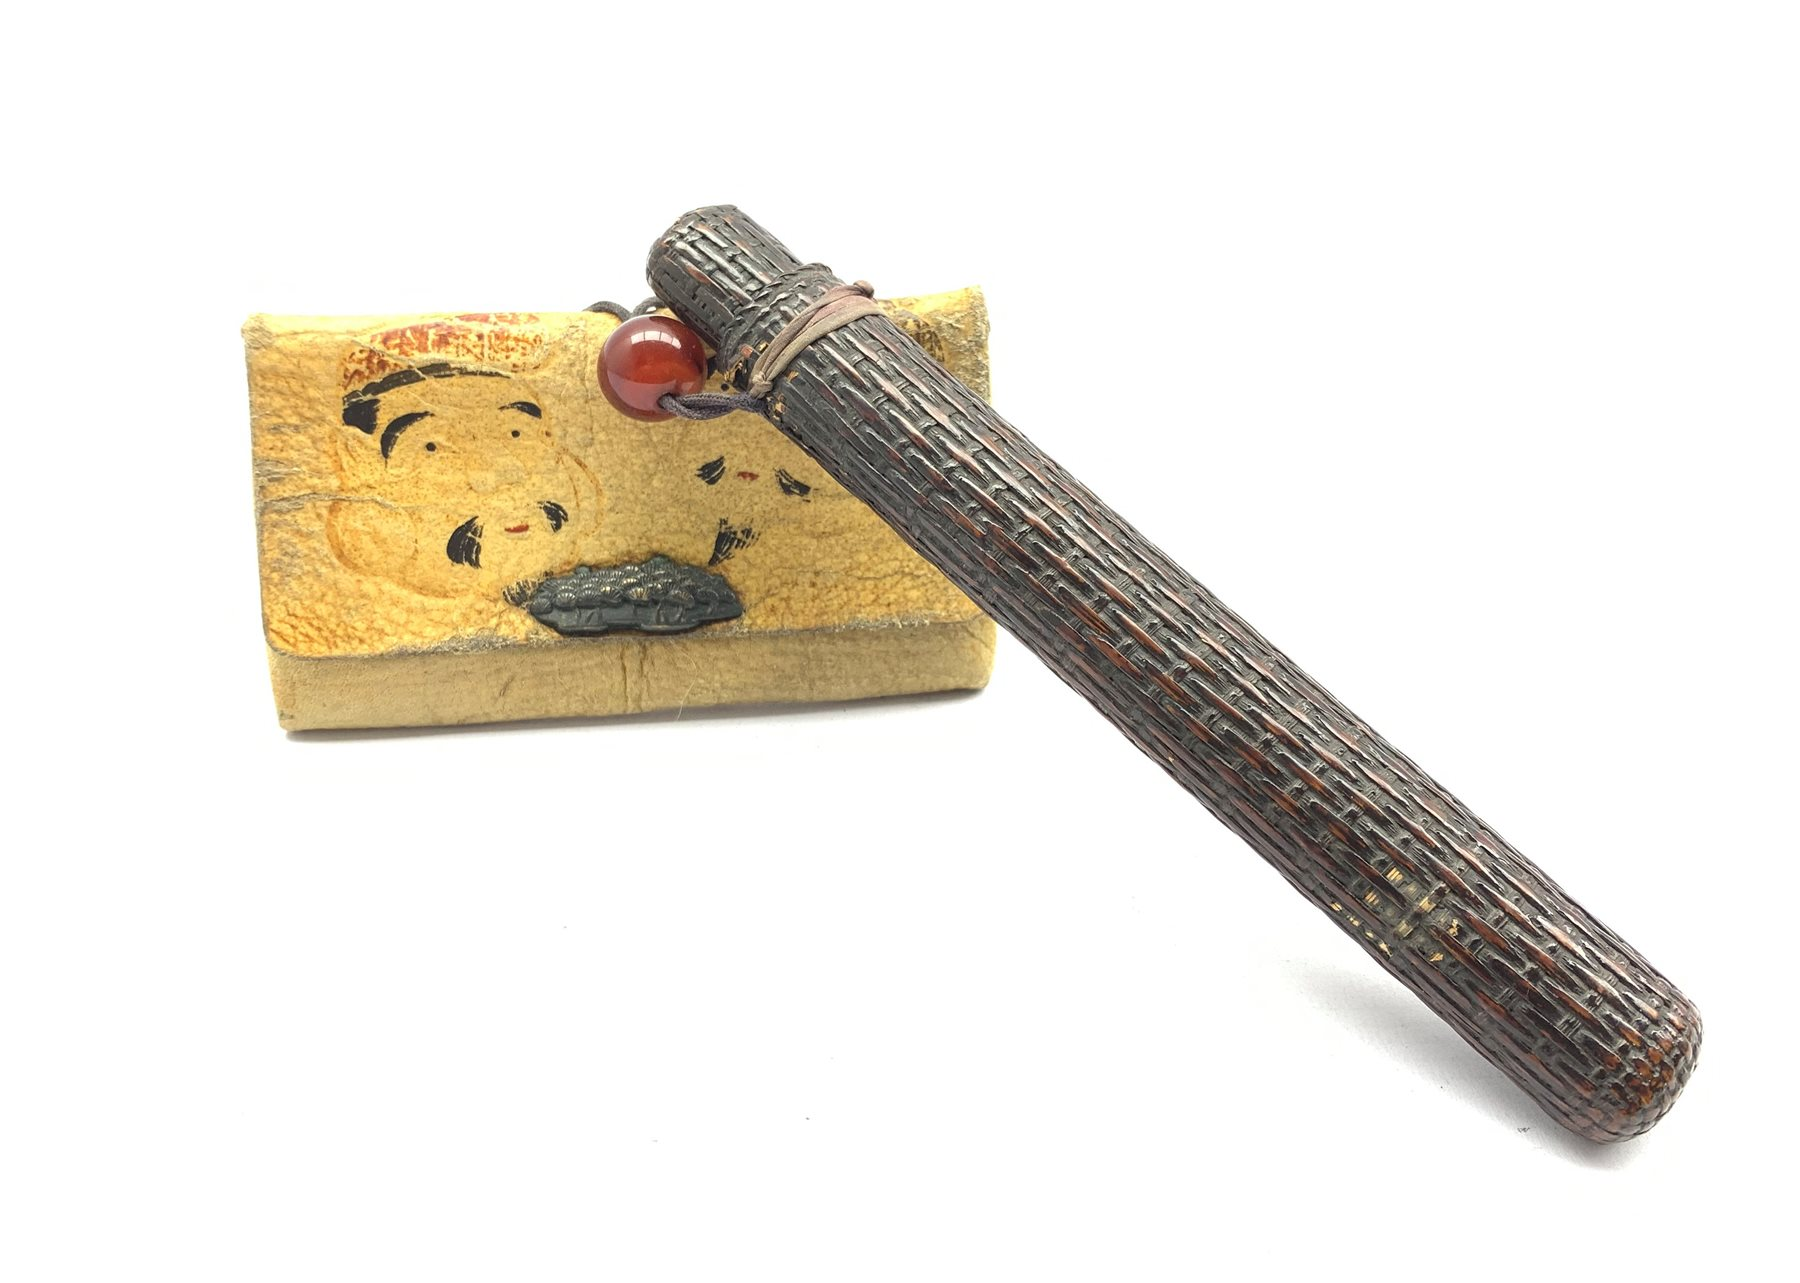 19th century Japanese embroidered tobacco pouch (tabako-ire) with bronze floral moulded mae-kanagu